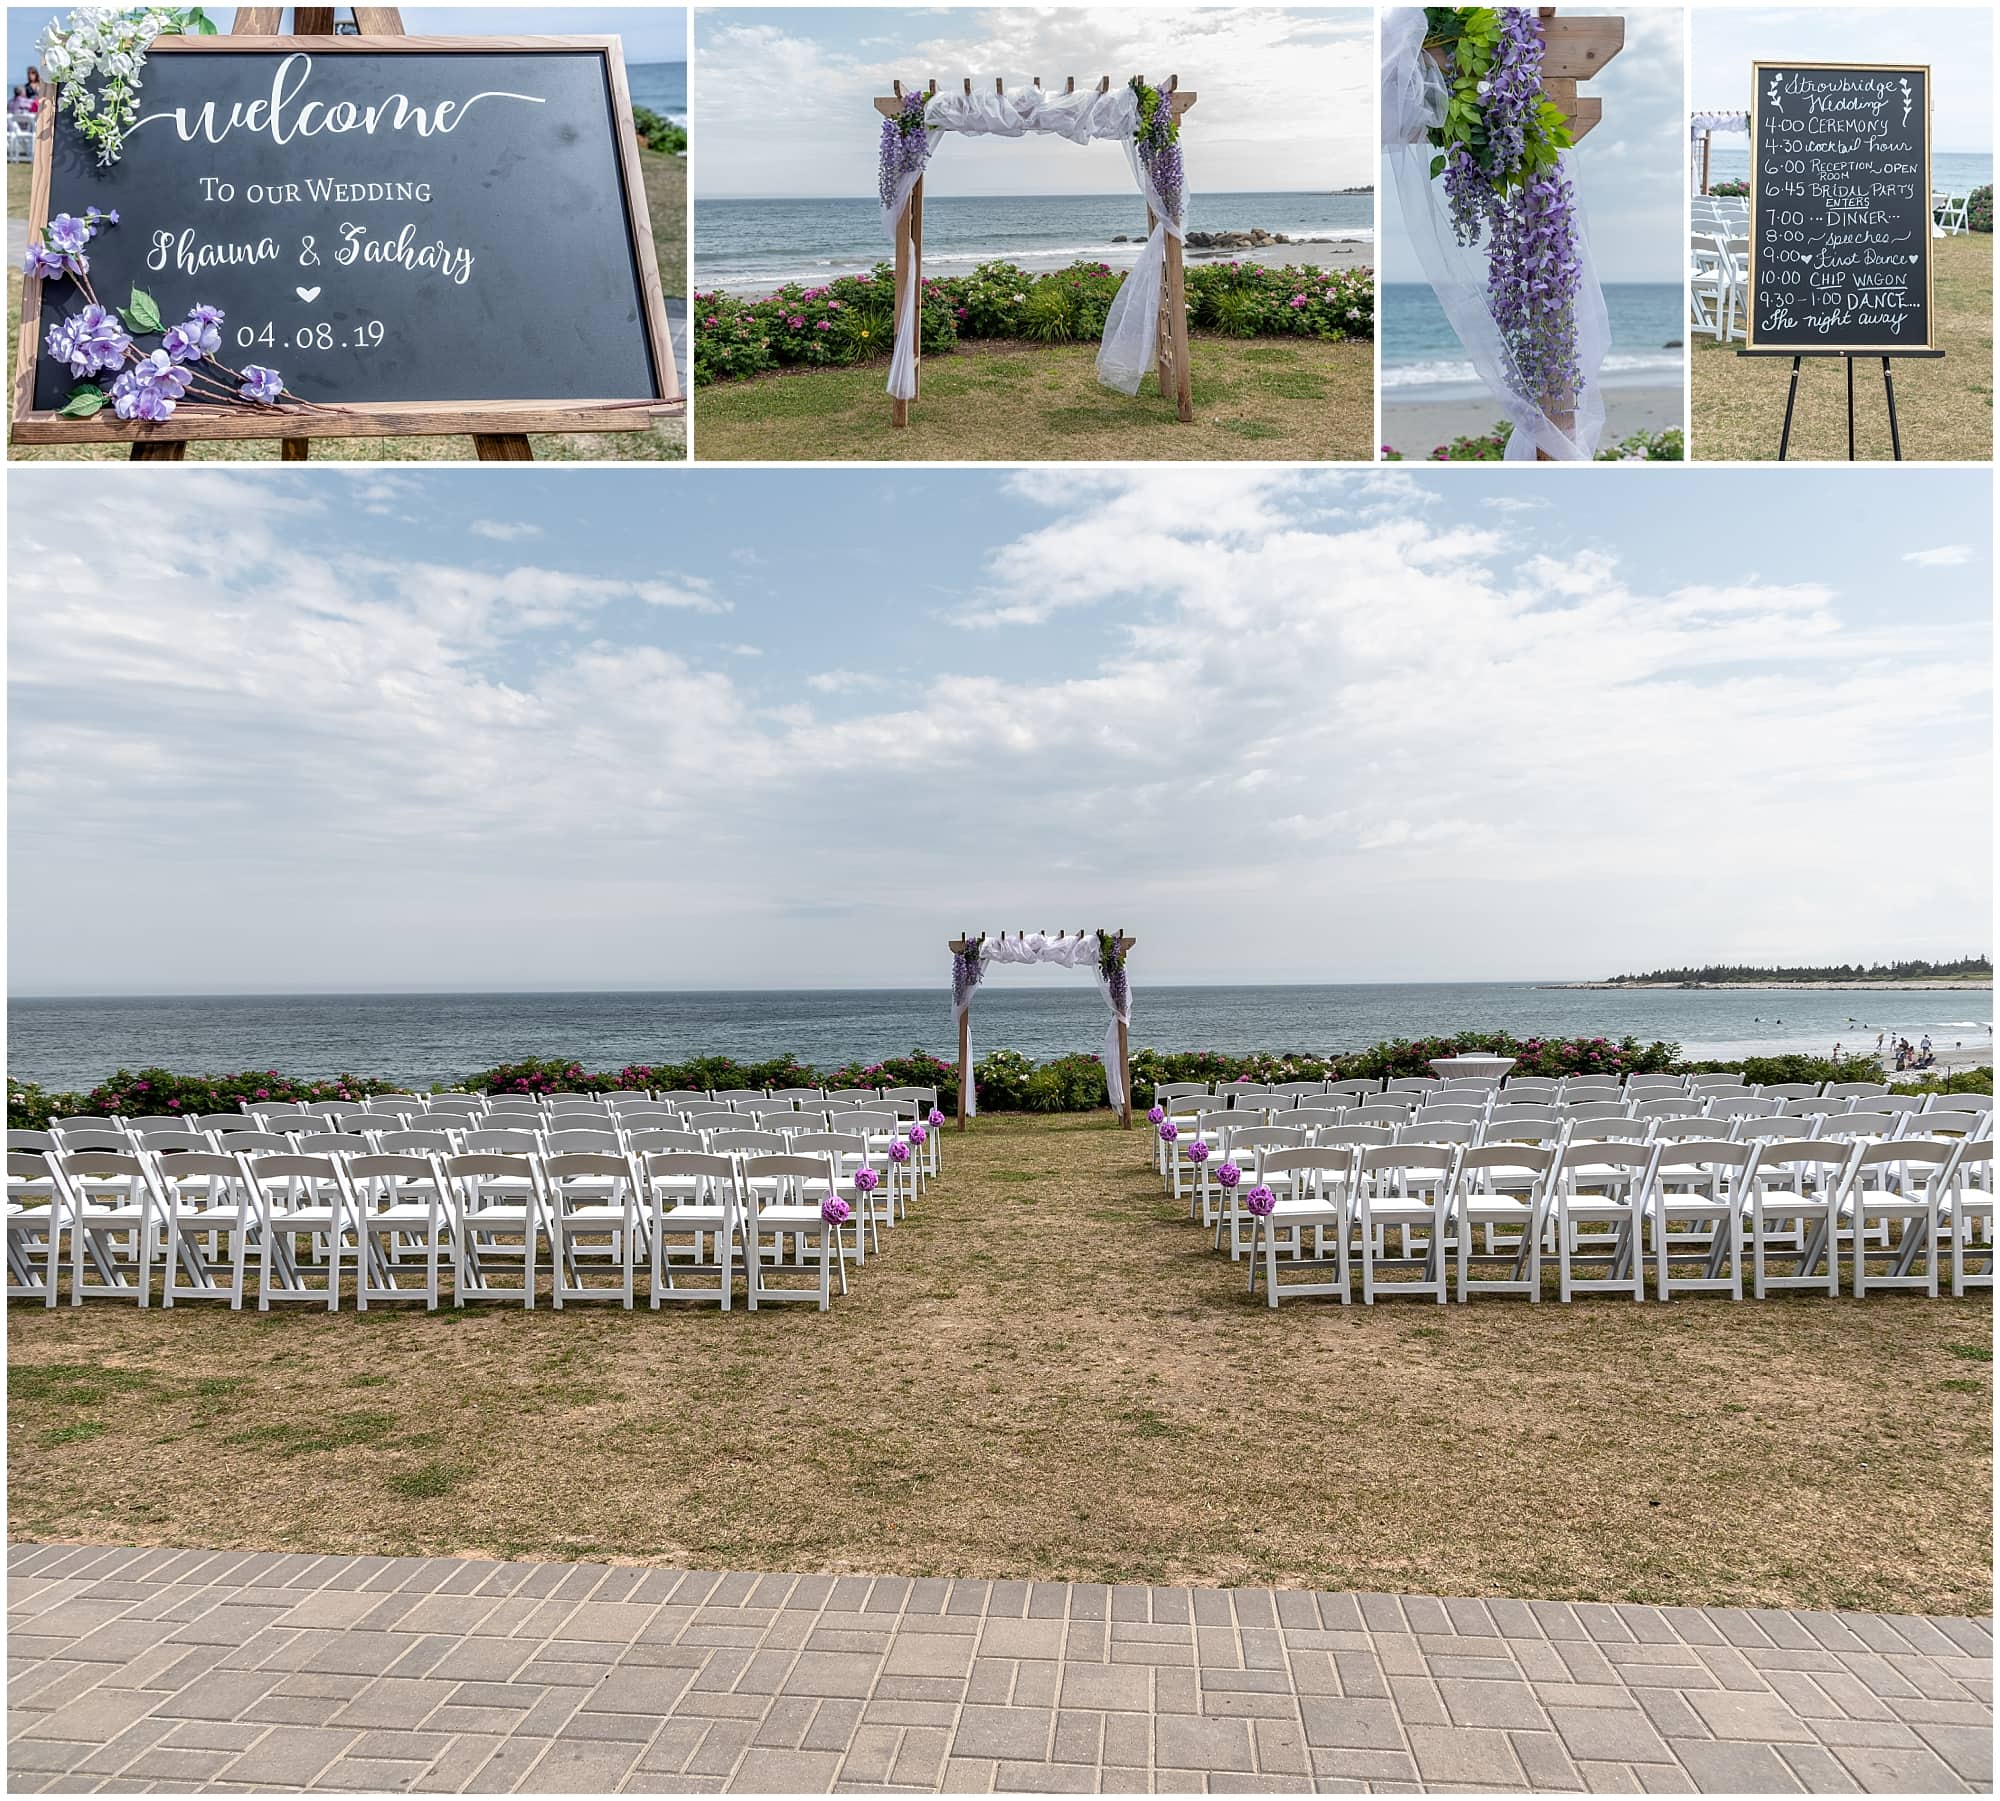 The wedding ceremony set up at White Point, NS.